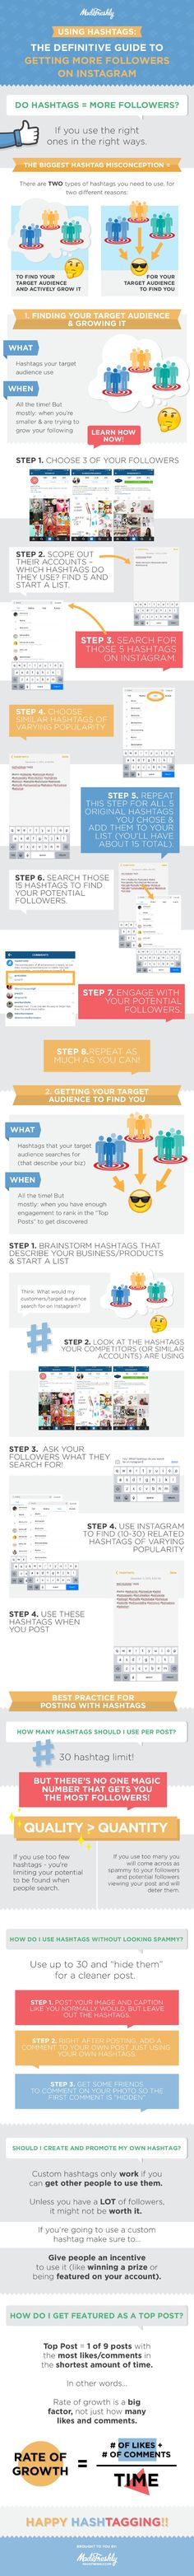 2 Must-Know Hashtag Techniques for More Followers on Instagram An Infographic